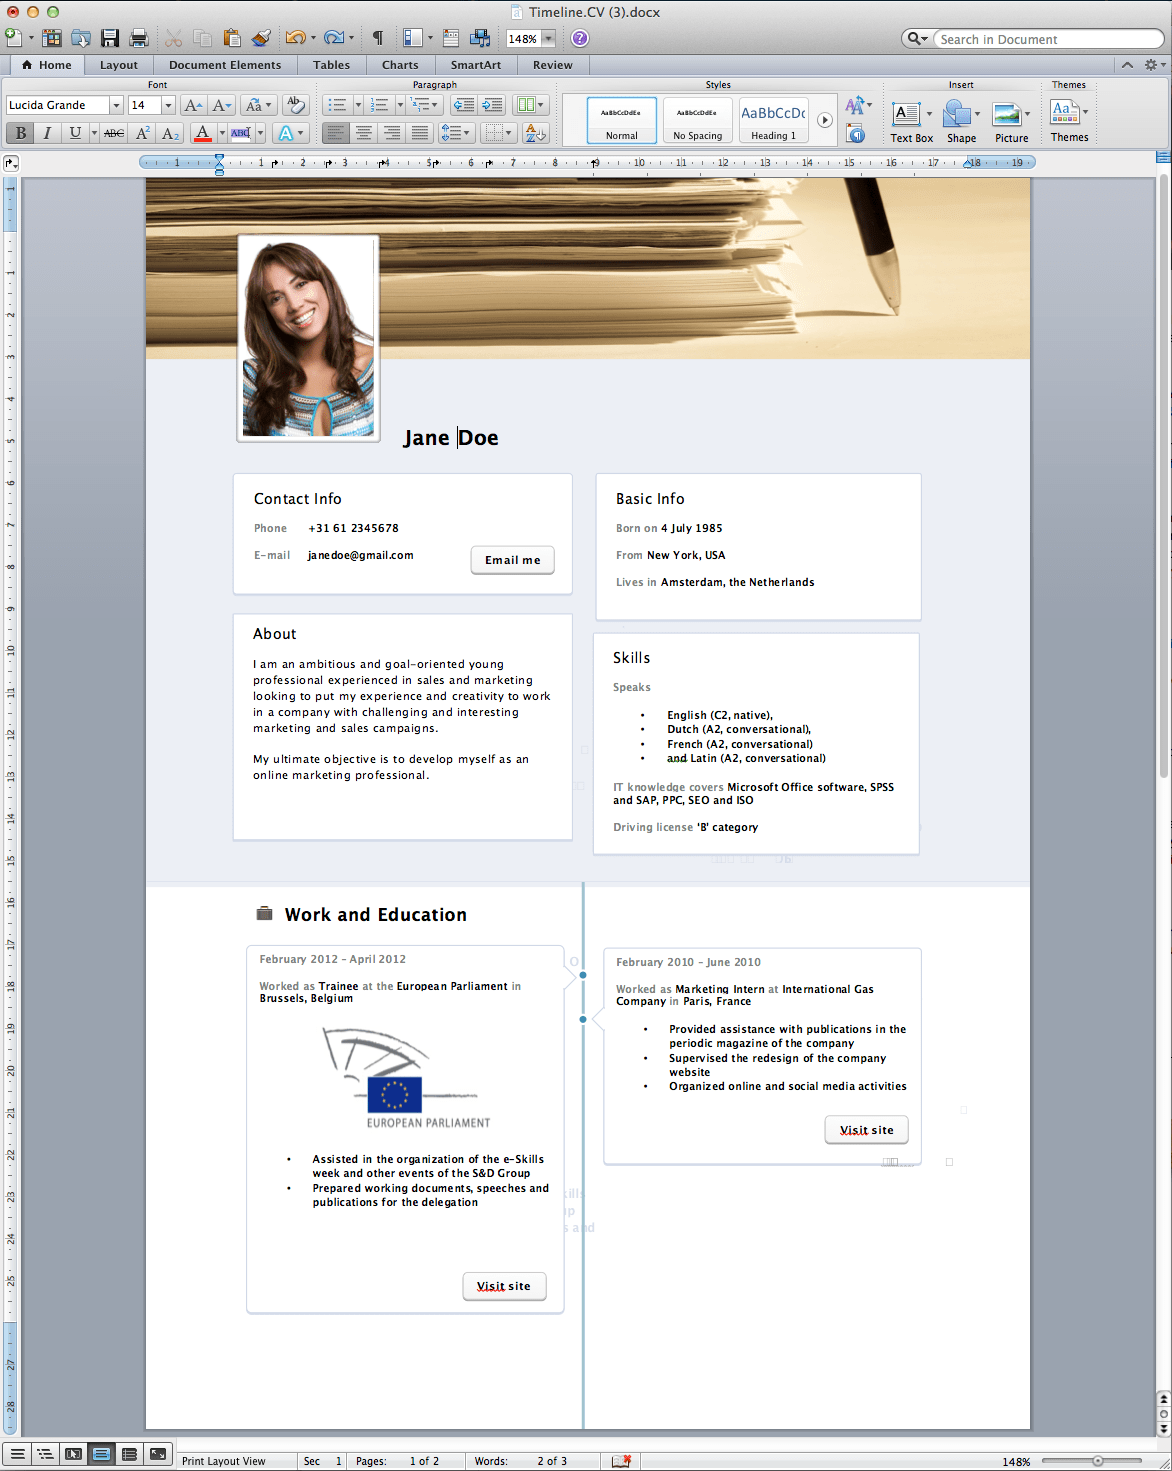 resume layout wordpad best online resume builder resume layout wordpad what is word computer hope file itfresherresumeformatinword resume sample doc resumes 413